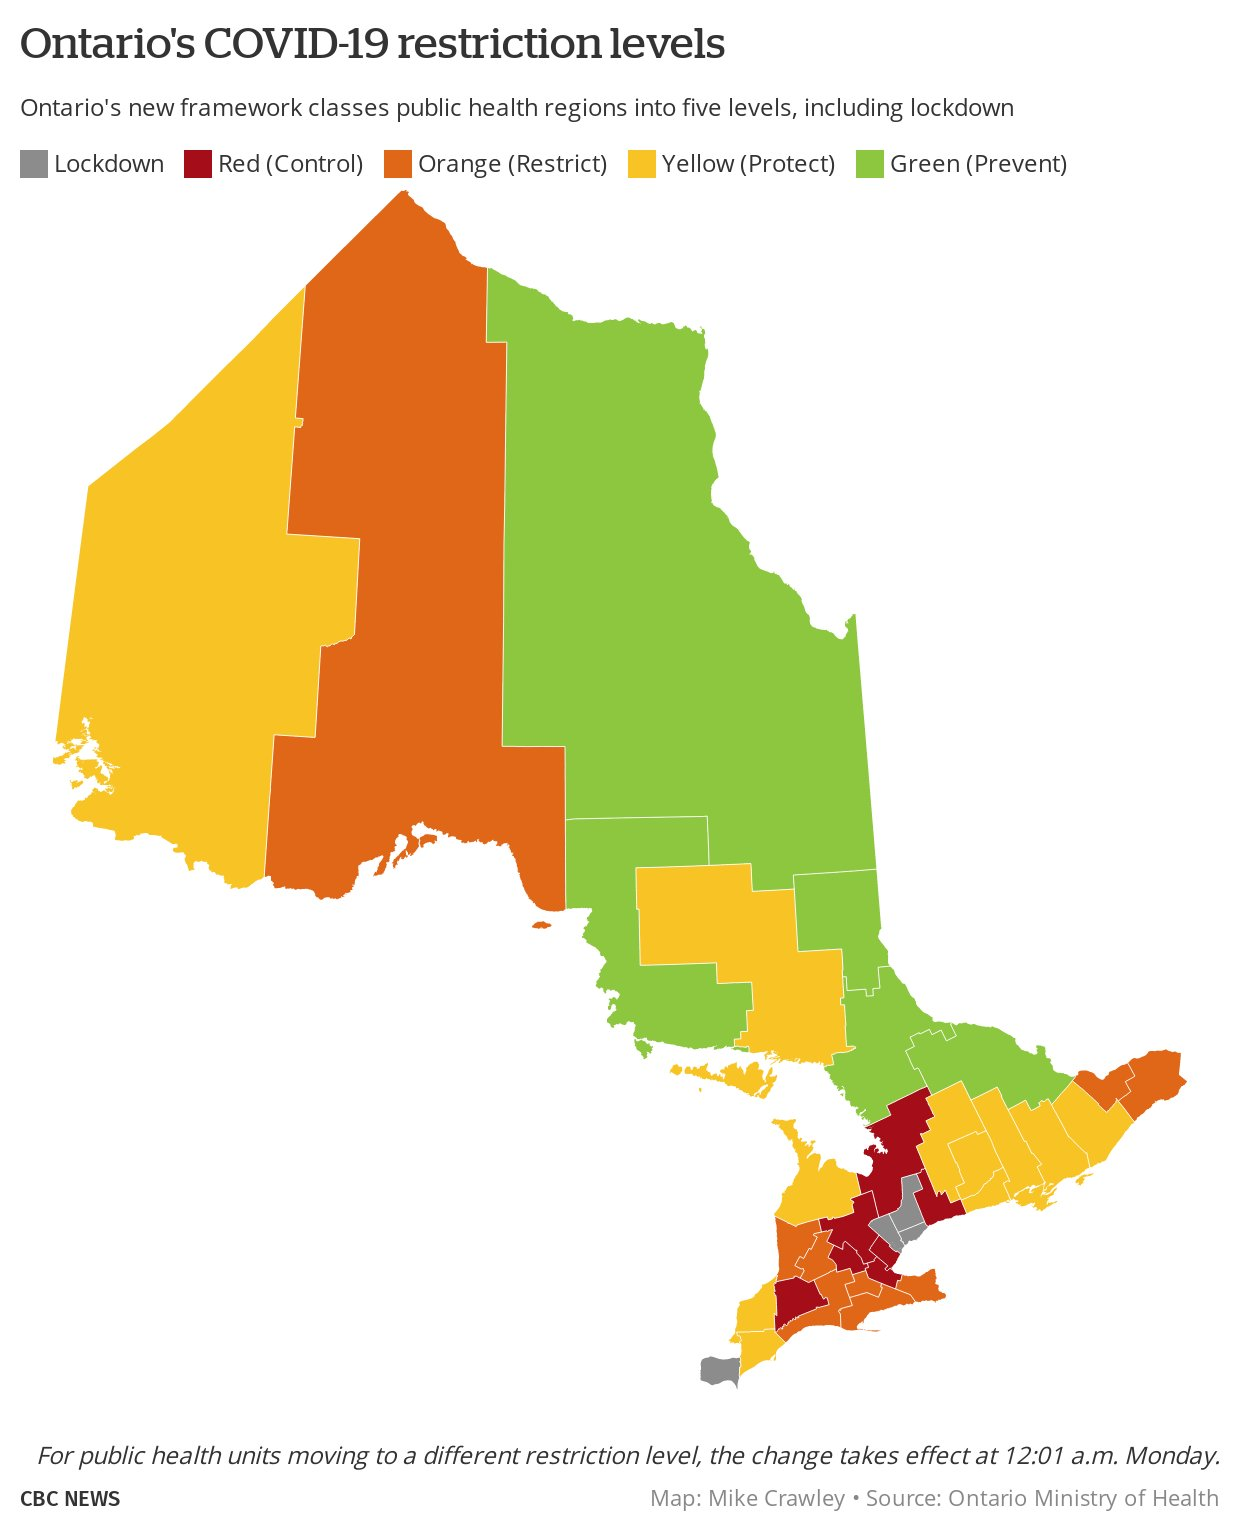 Mike Crawley On Twitter Breaking Ontario Expands Lockdown Level Of Restrictions To York Region And Windsor Essex New Red Zones Middlesex London Simcoe Muskoka Wellington Dufferin Guelph All Changes To Take Effect 12 01am Monday Https T Co